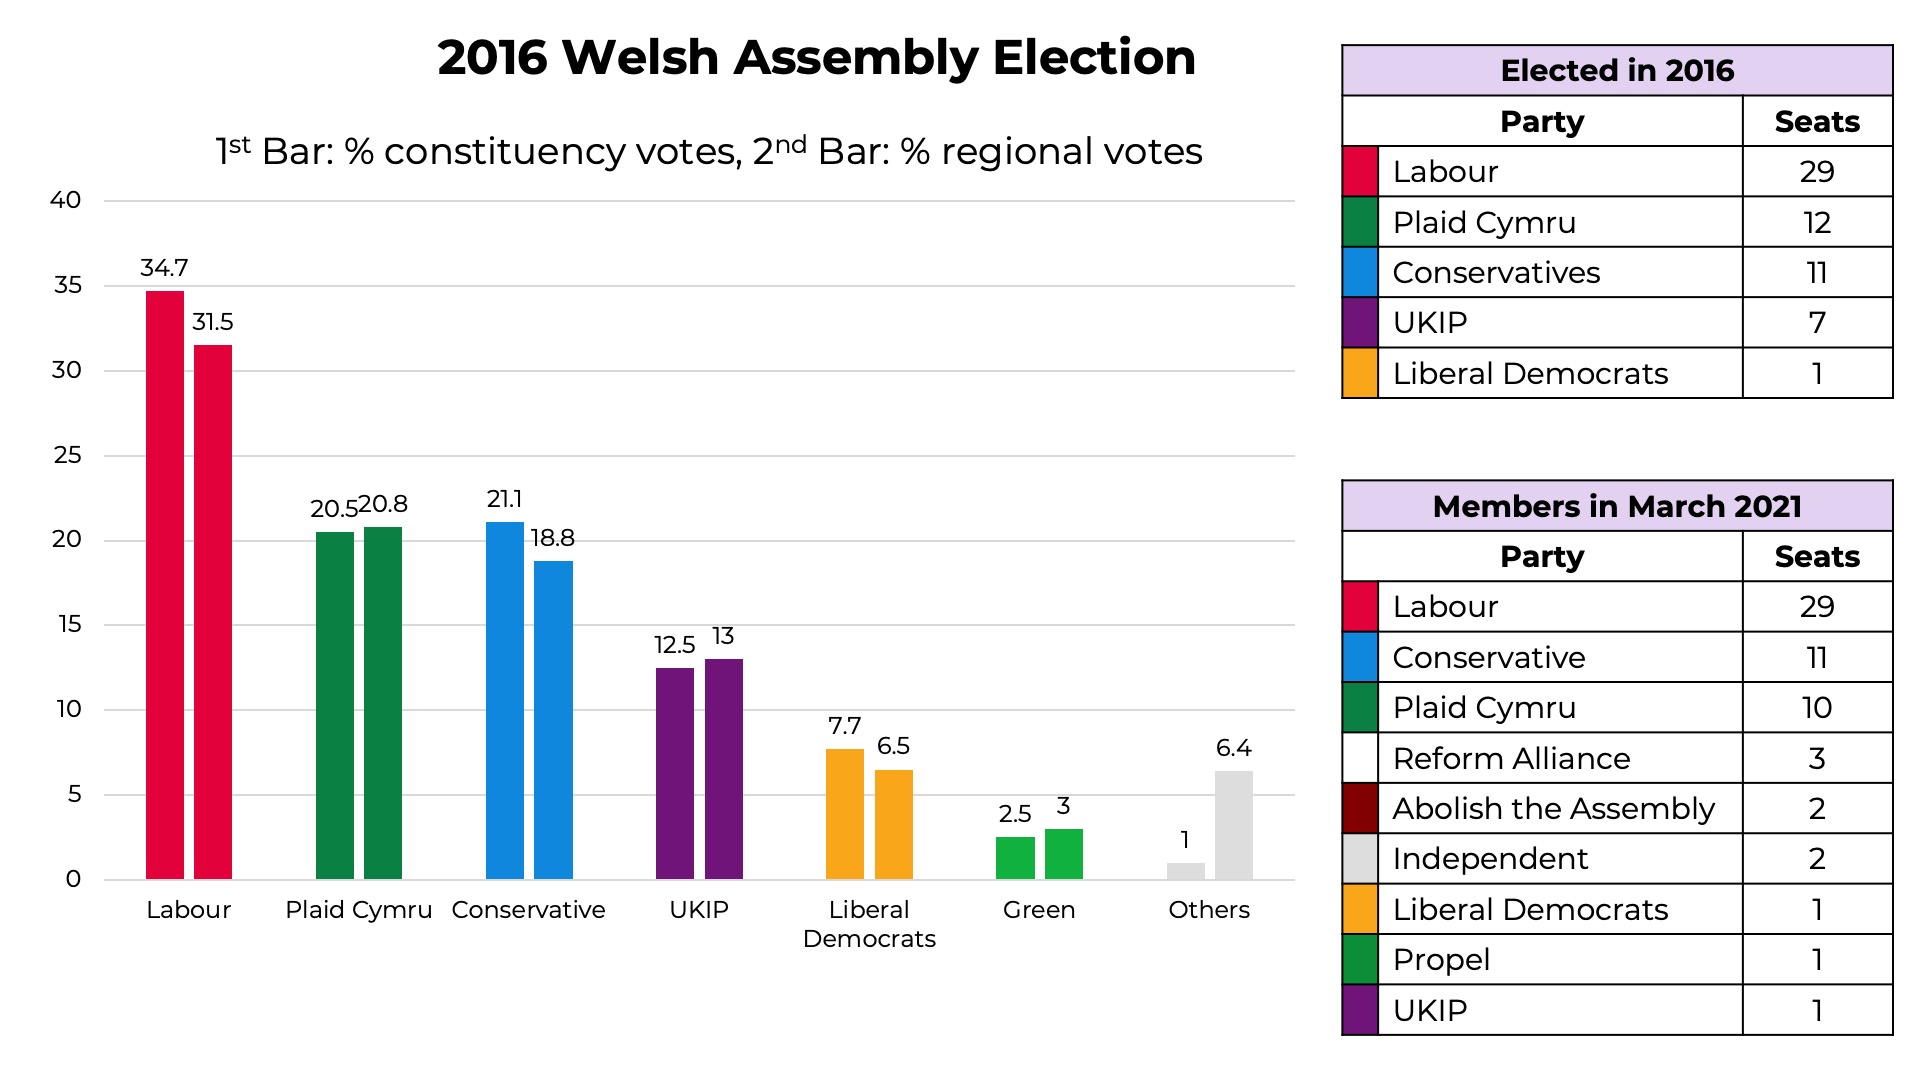 2016 Welsh Assembly Election results